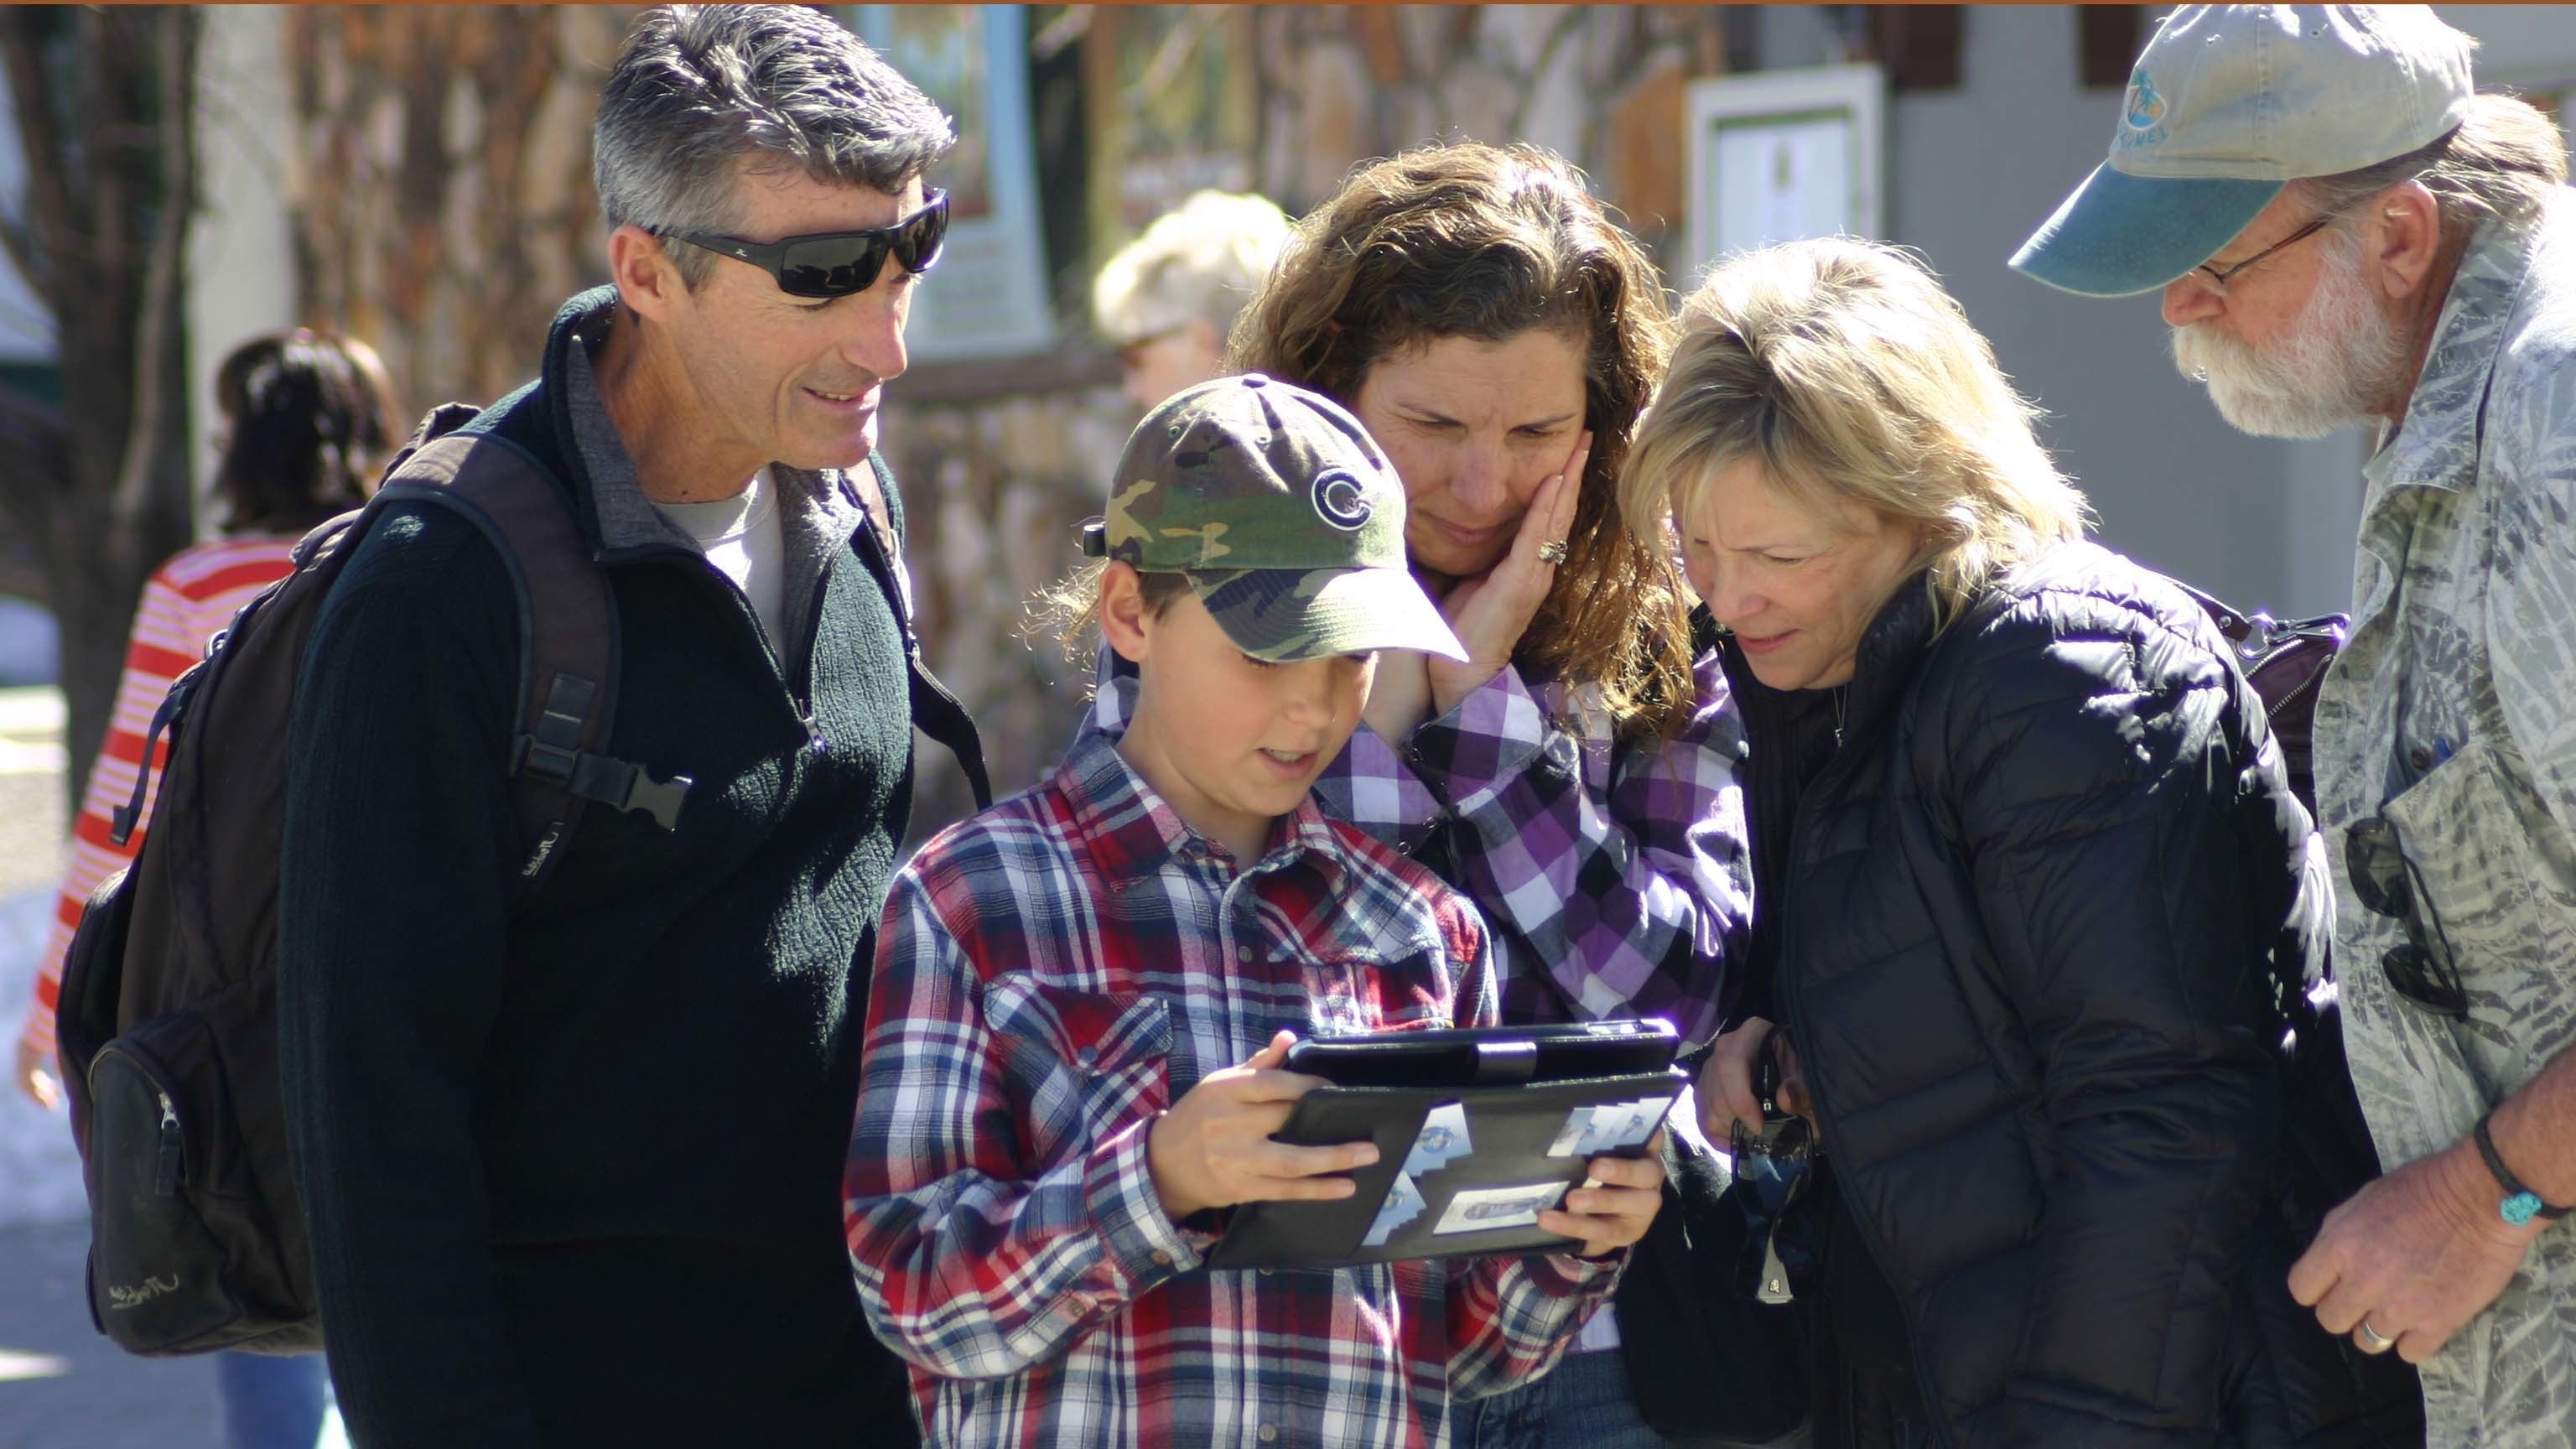 Multi-generational family looking at handheld device during a family scavenger hunt